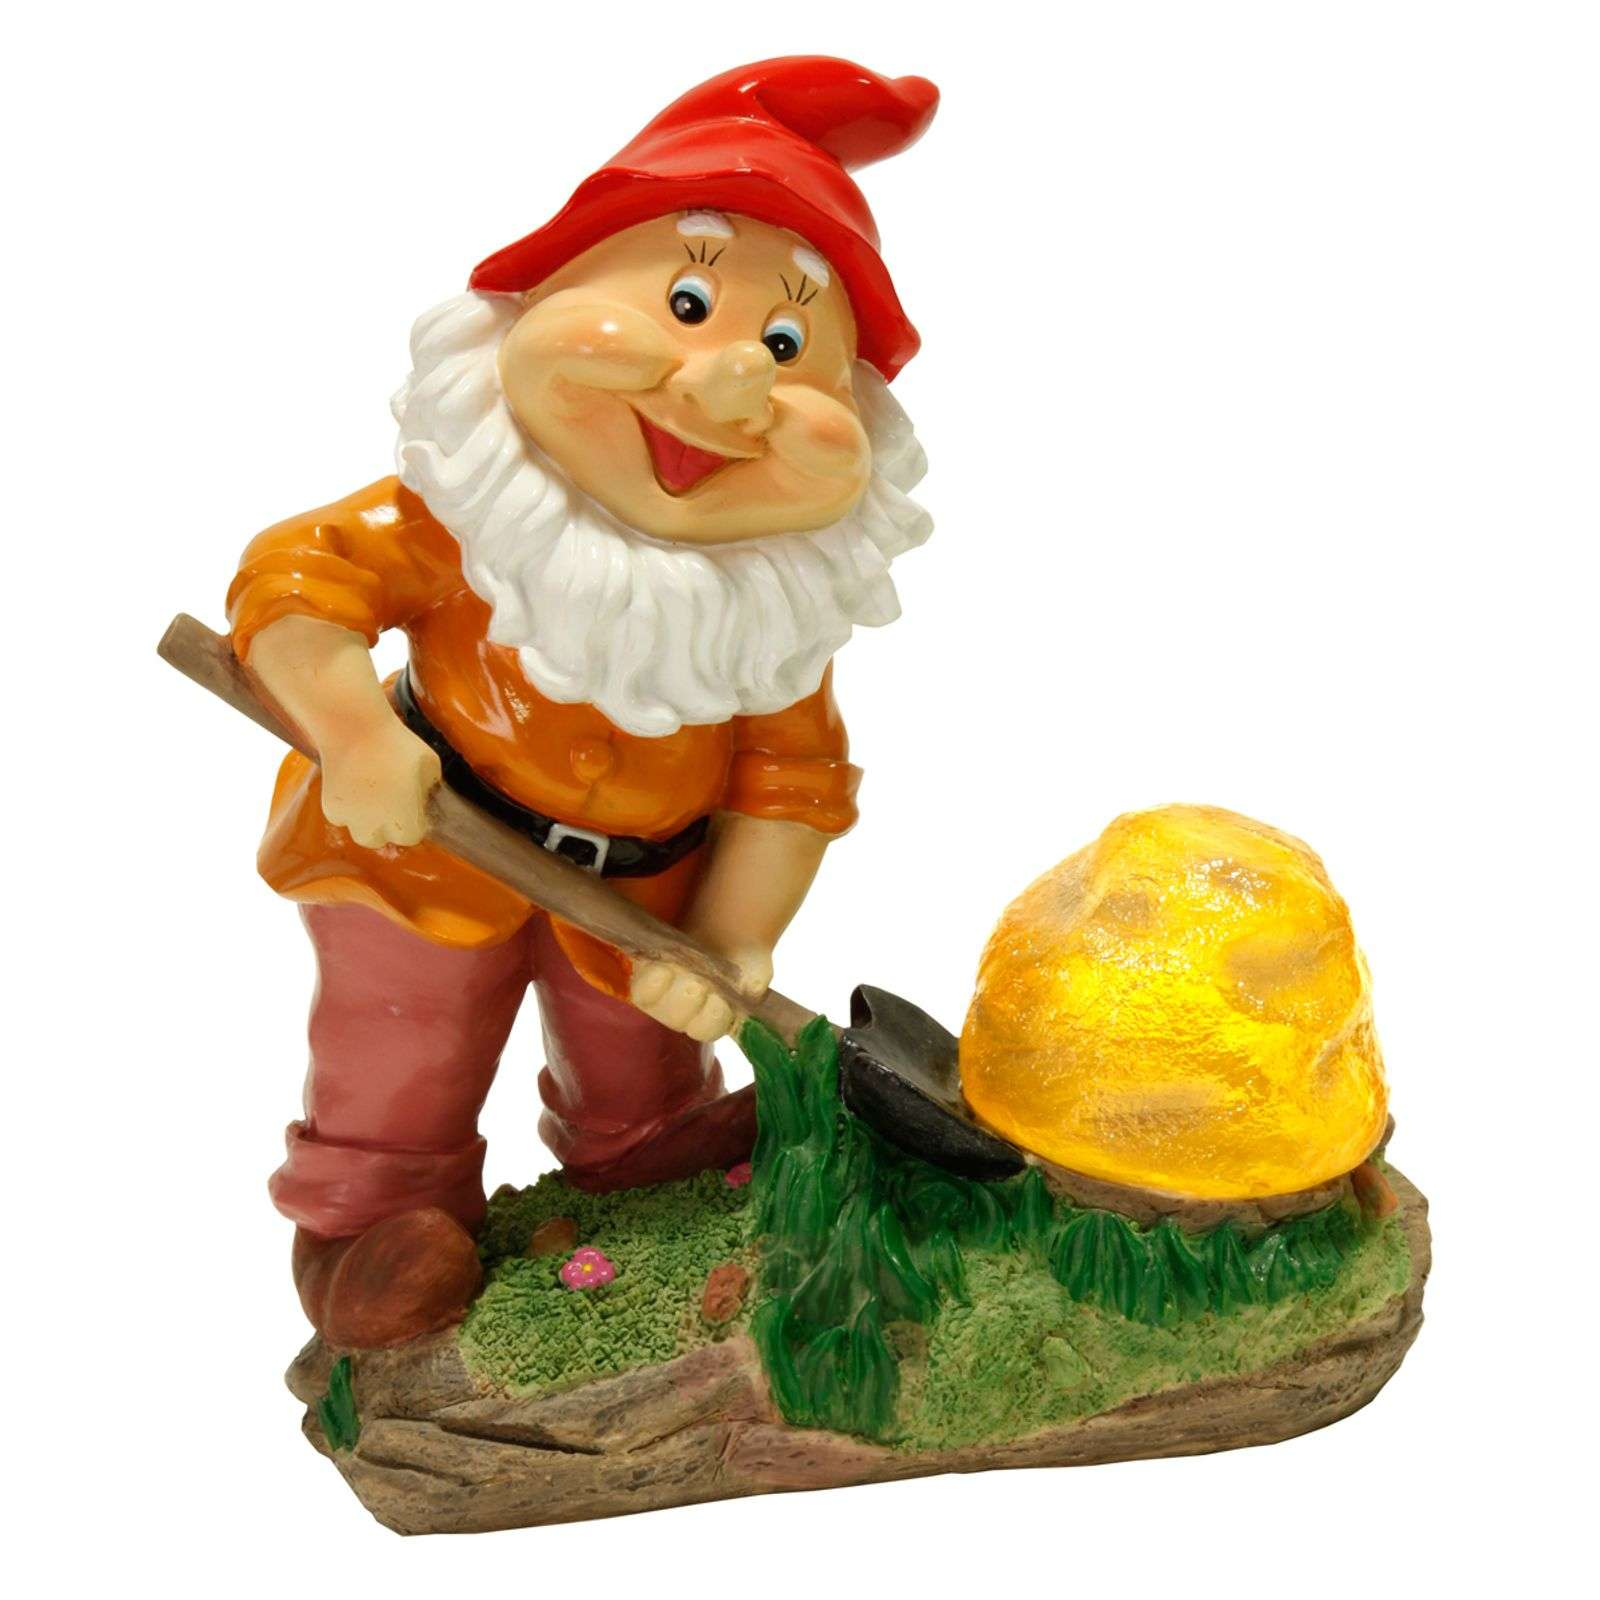 Cute Garden gnome with solar technology-1522328-01